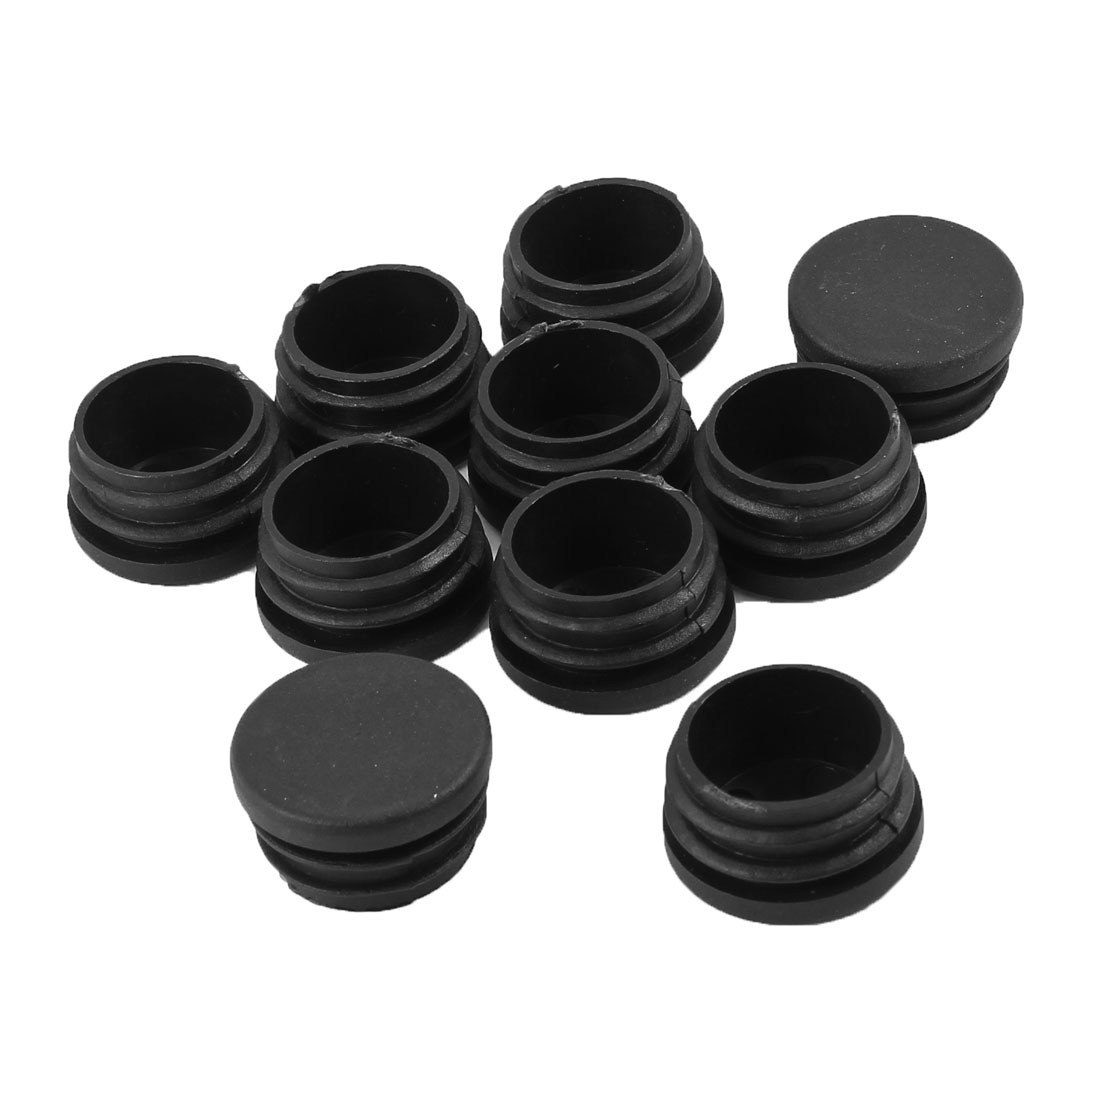 Tubing Edges Cover Cap Blanking End Cover Round Tube Insert 10 pcs